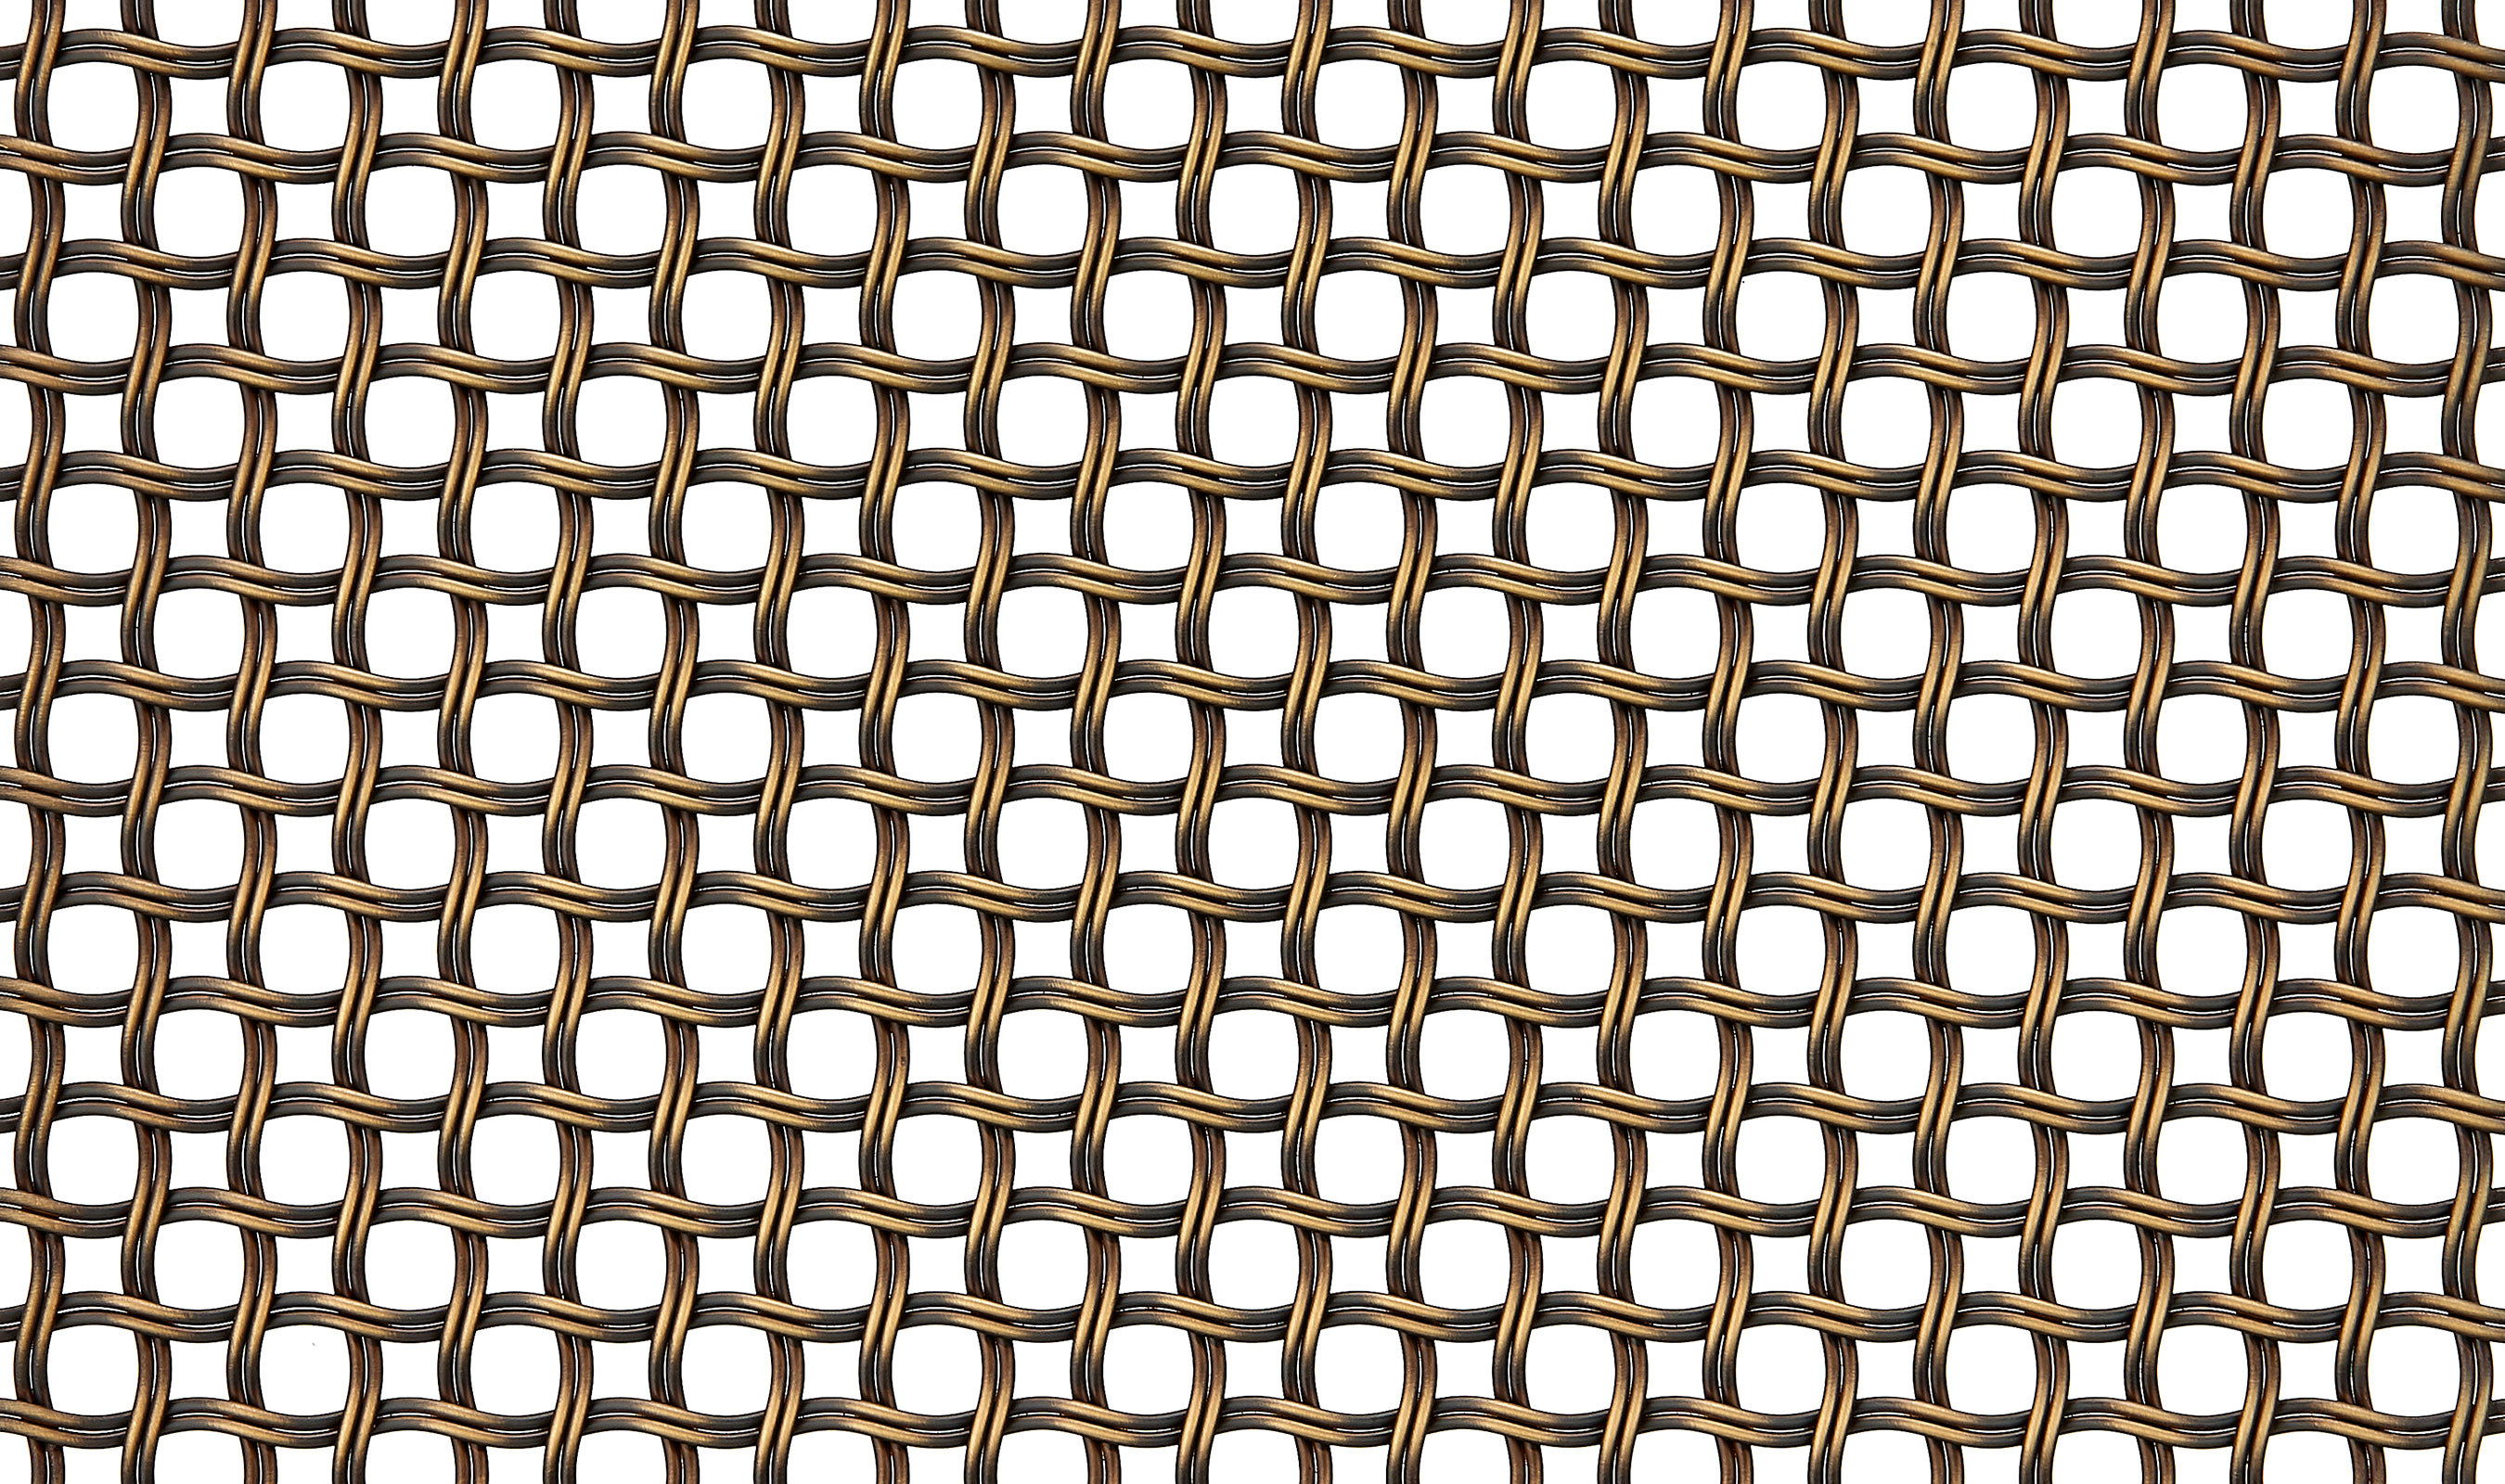 Banker Wire M22-83 antique brass plated wire mesh pattern